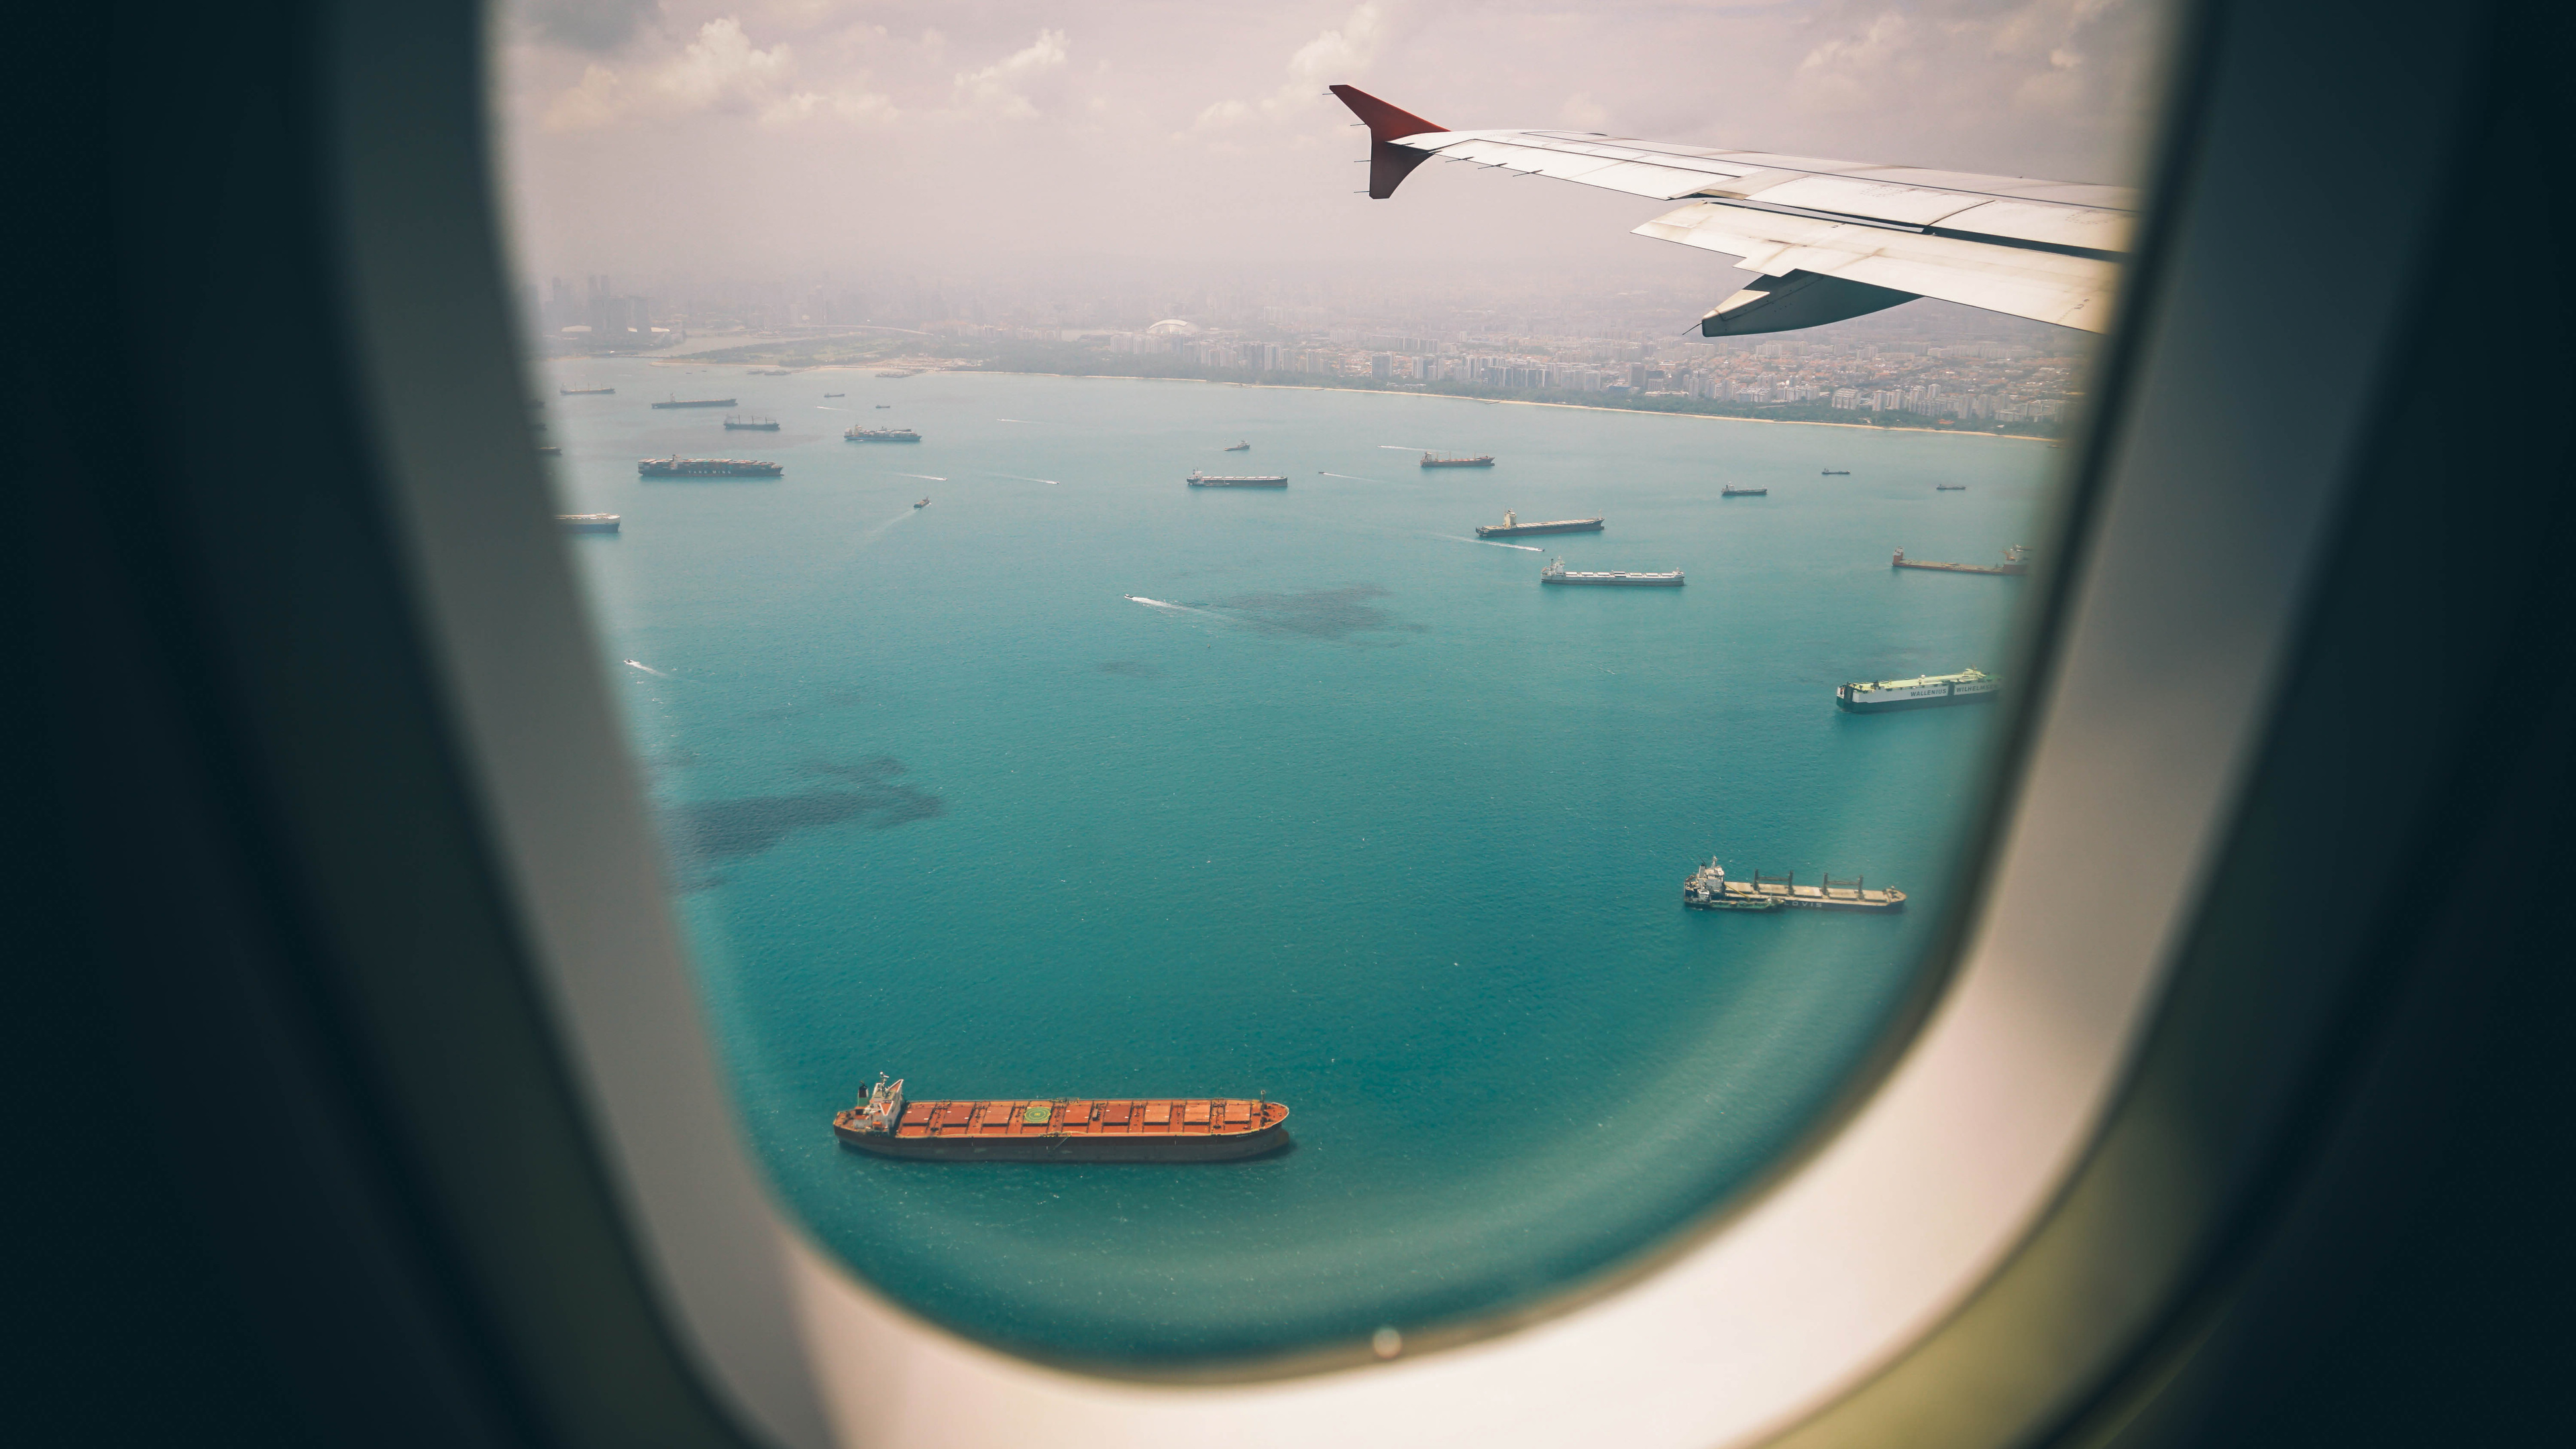 Wallpaper 4k Boats Sea View From Airplane Window 4k 4k Wallpapers